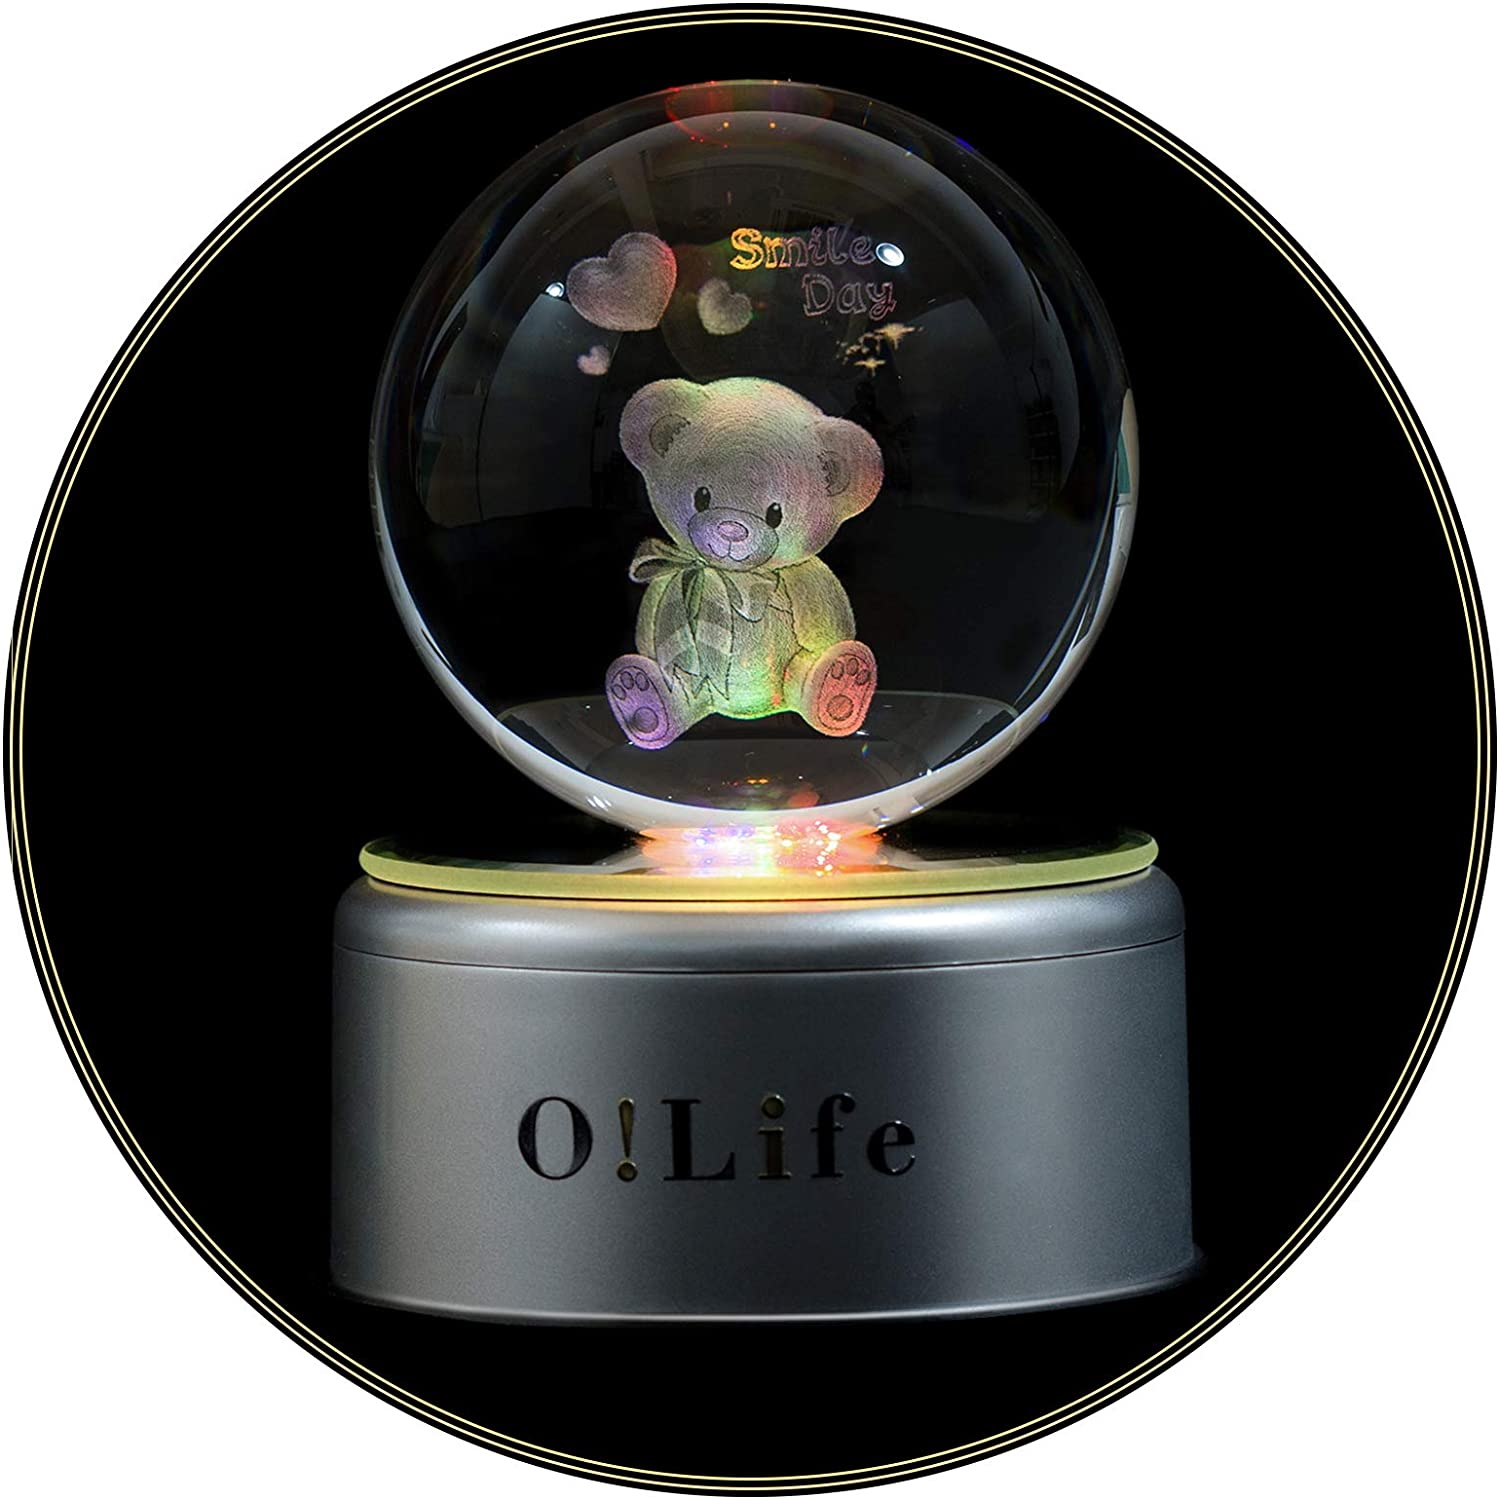 O!Life 3D Crystal Ball (3.15 Inches) with Upgraded Music Box LED Night Light, 18 World Famous Piano Music, Luminous Rotating LED Projection, Room Decoration, Great Gifts for Various Scenes & Holidays